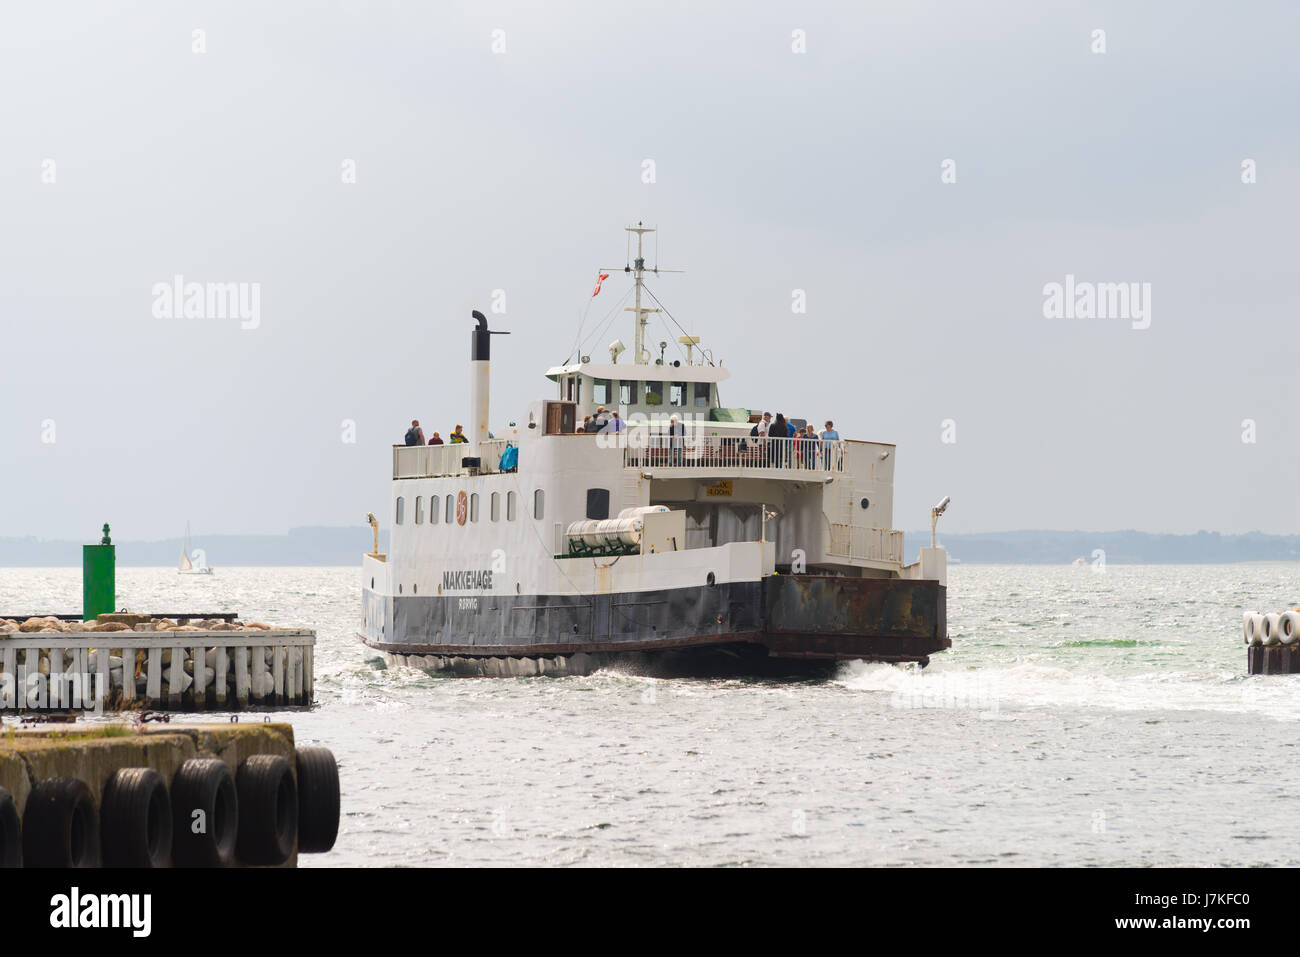 HUNDESTED, DENMARK - AUGUST 8, 2016: Departurel of the ferry in Hundested, a small town in the northern of Zealand - Stock Image